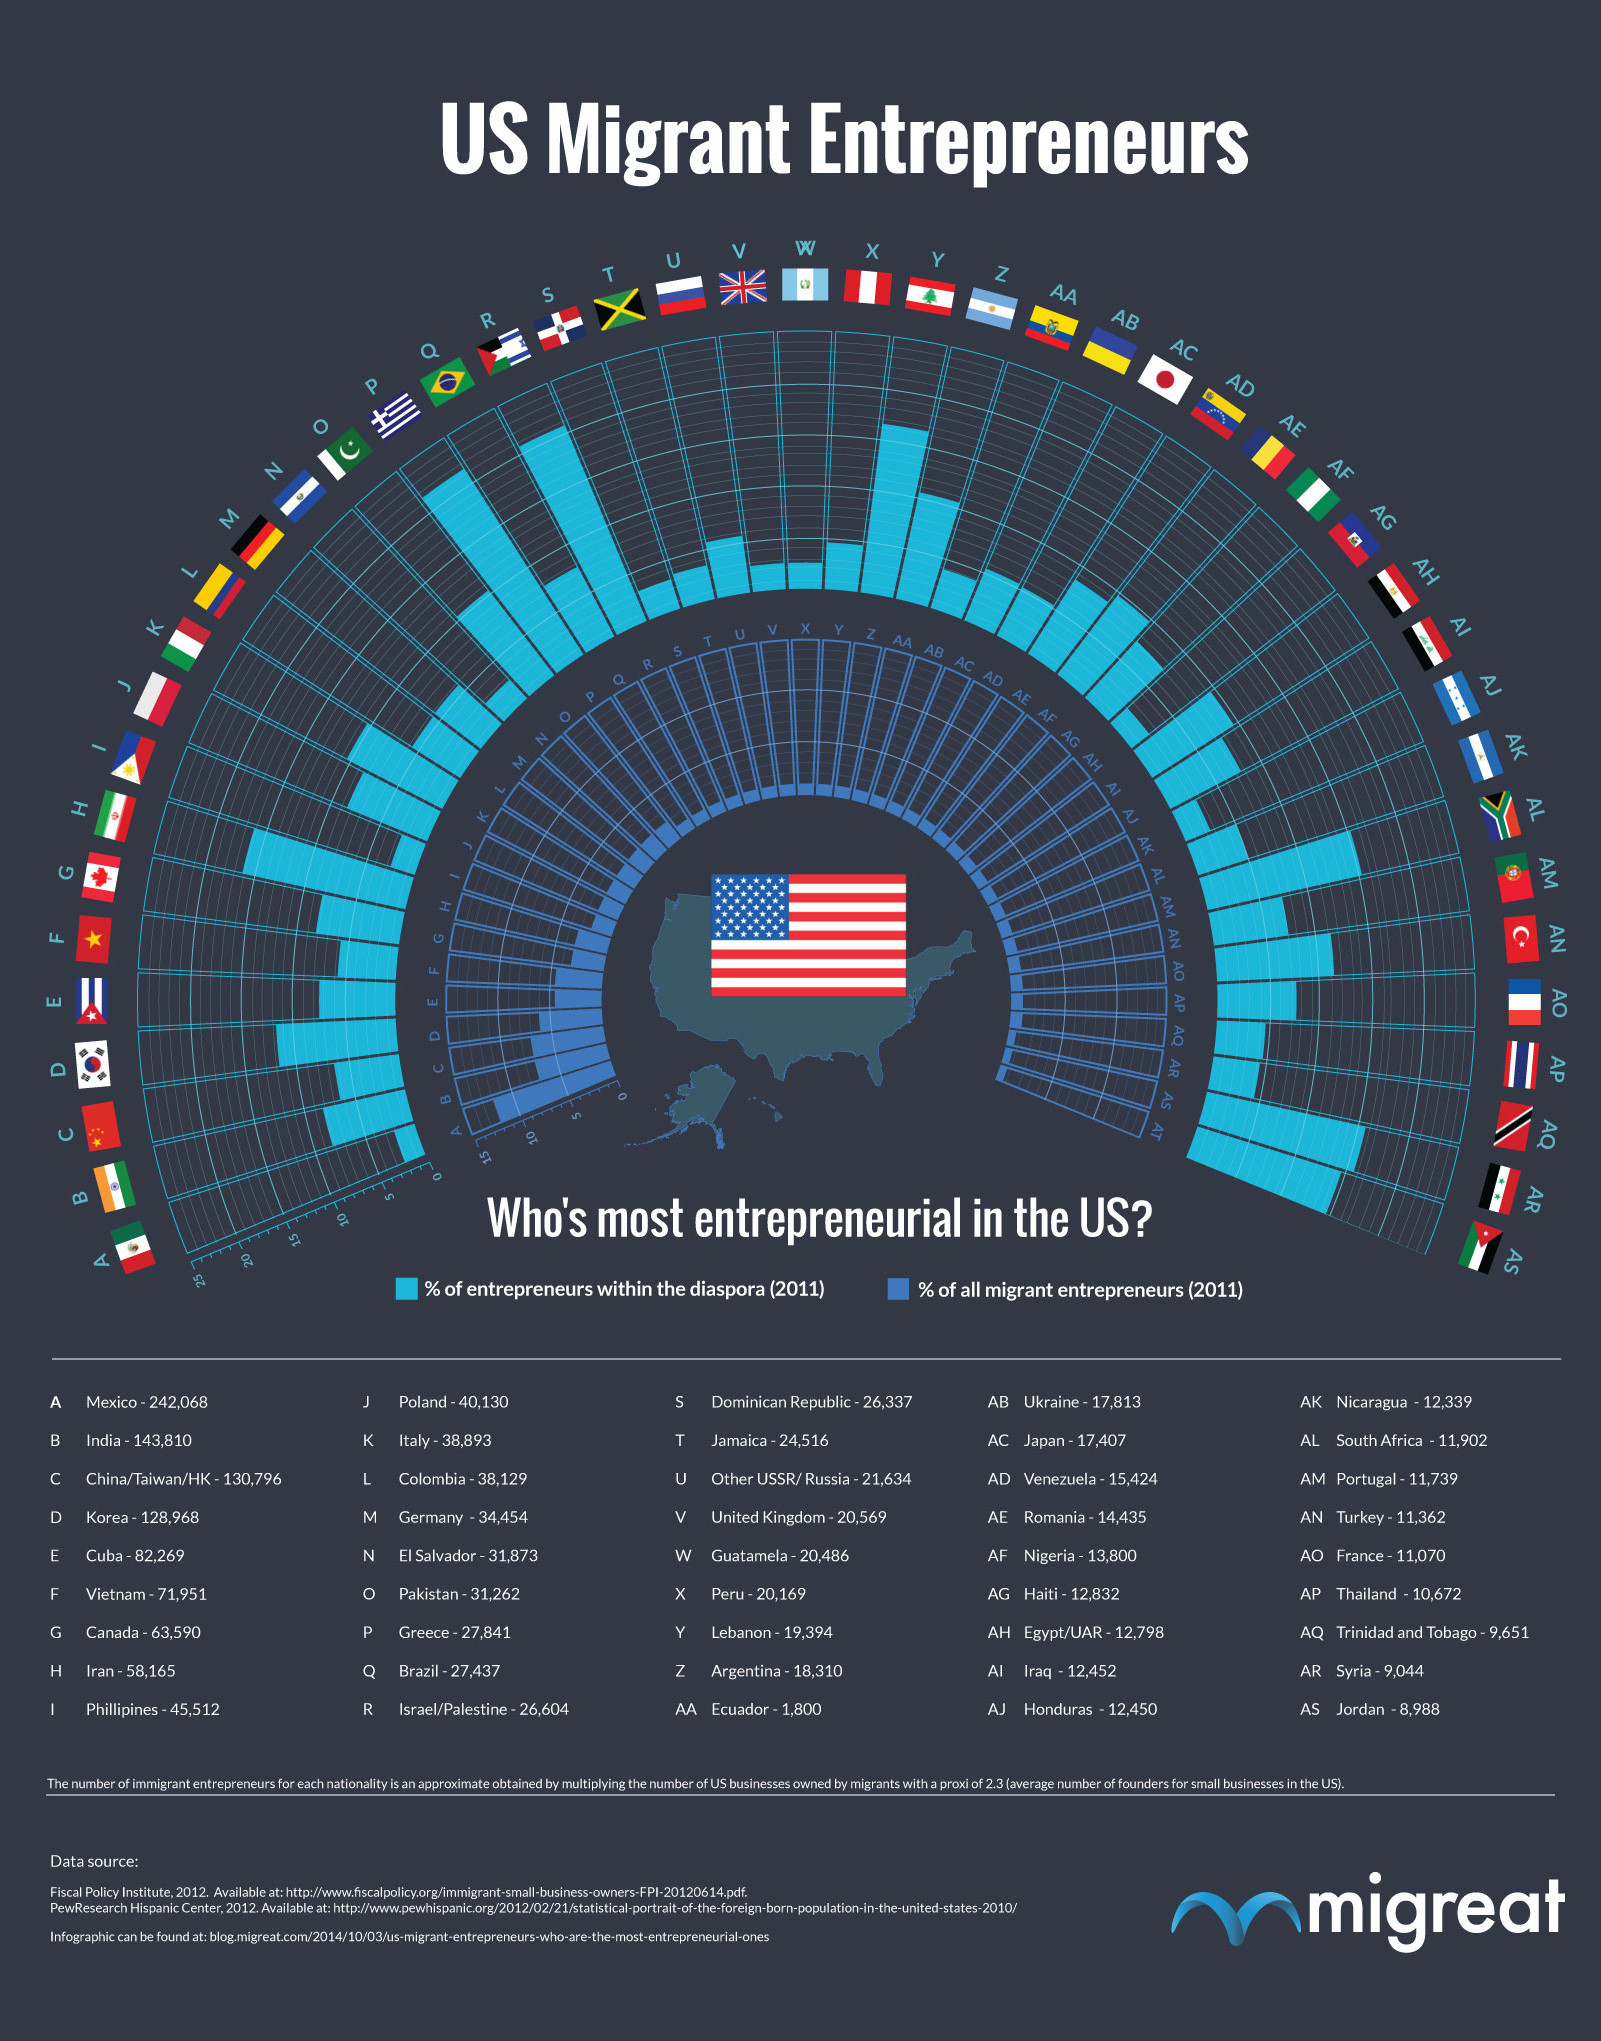 Who is the most entrepreneurial in the US?